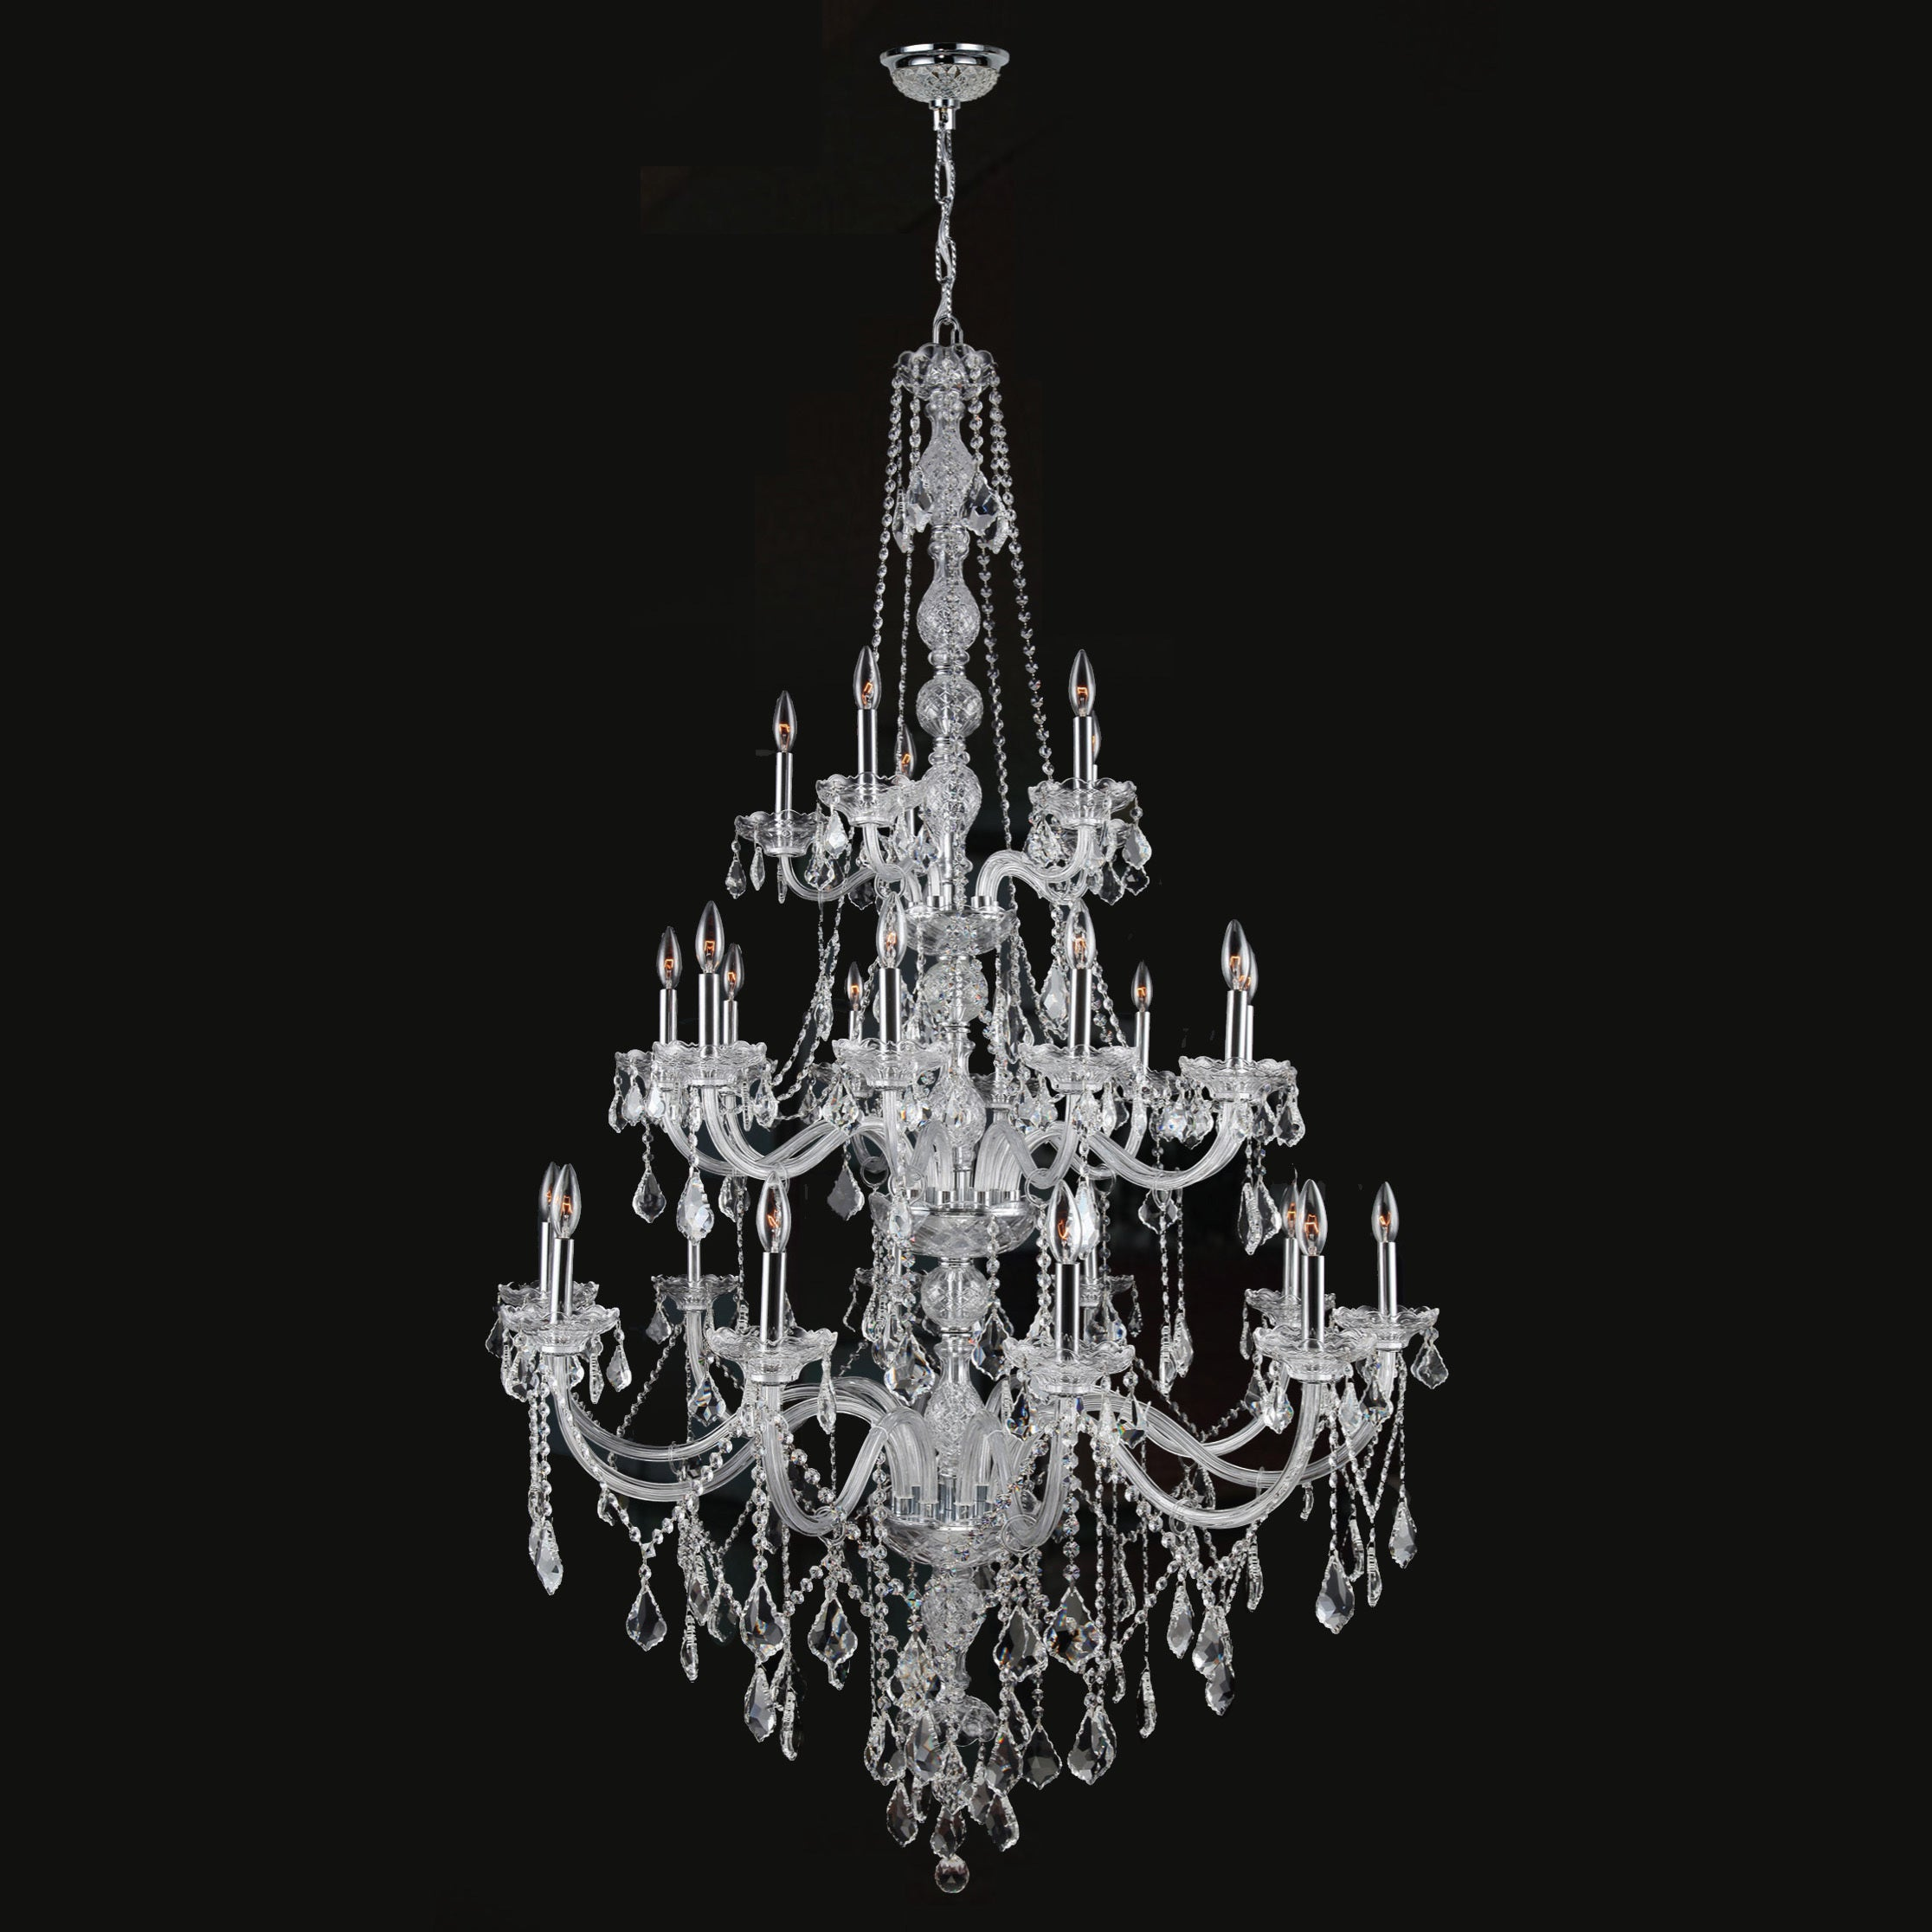 Venetian italian style 25 light chrome finish and clear crystal 3 venetian italian style 25 light chrome finish and clear crystal 3 tier extra large chandelier free shipping today overstock 17838775 arubaitofo Choice Image